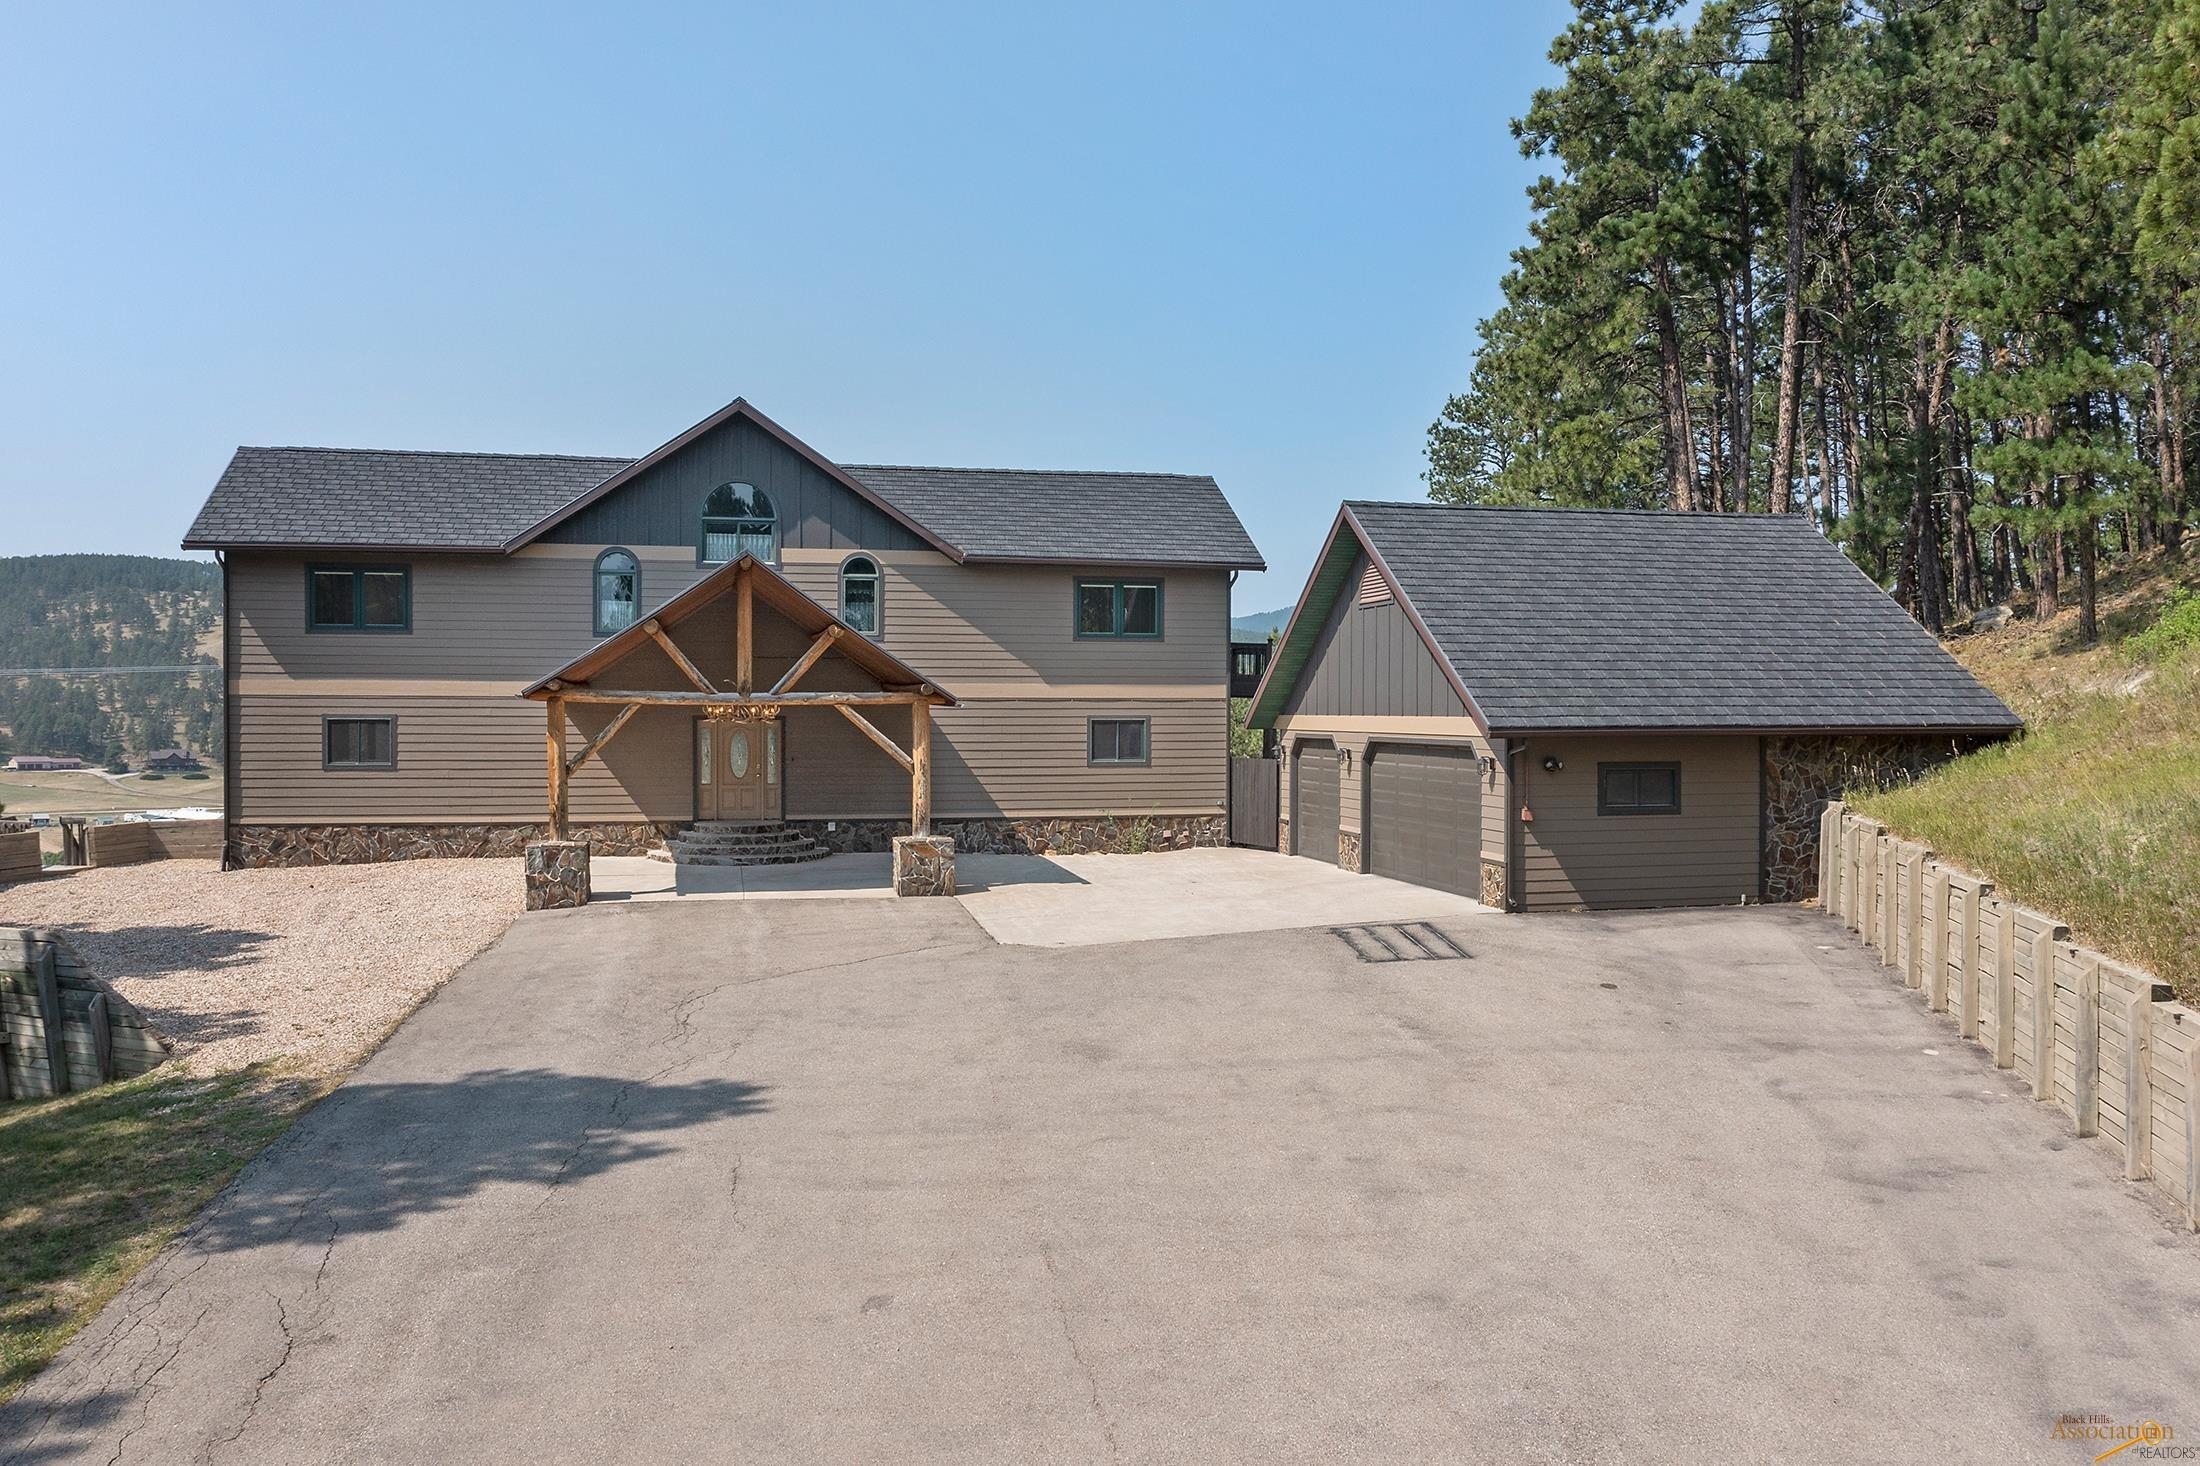 Breath taking views of the Black Hills from this 5784 sq ft Home which is nestled on 6.8 acres, high on the hill and borders U.S. B.L.M. property. Home includes 5 large bedrooms, 4 full bathrooms, main floor living room with gas fire place, built in we bar, walk-in coat closet, walk-in pantry as well as a huge laundry room.  The 3 car garage is heated and encompassed by paved parking for multiple vehicles with two 50 amp RV hookups. Need more garage/shop space? There's plenty of room to build more.  Enjoy your evenings in the Hot Tub of entertaining guests on the large deck. This Home is Move in Ready.